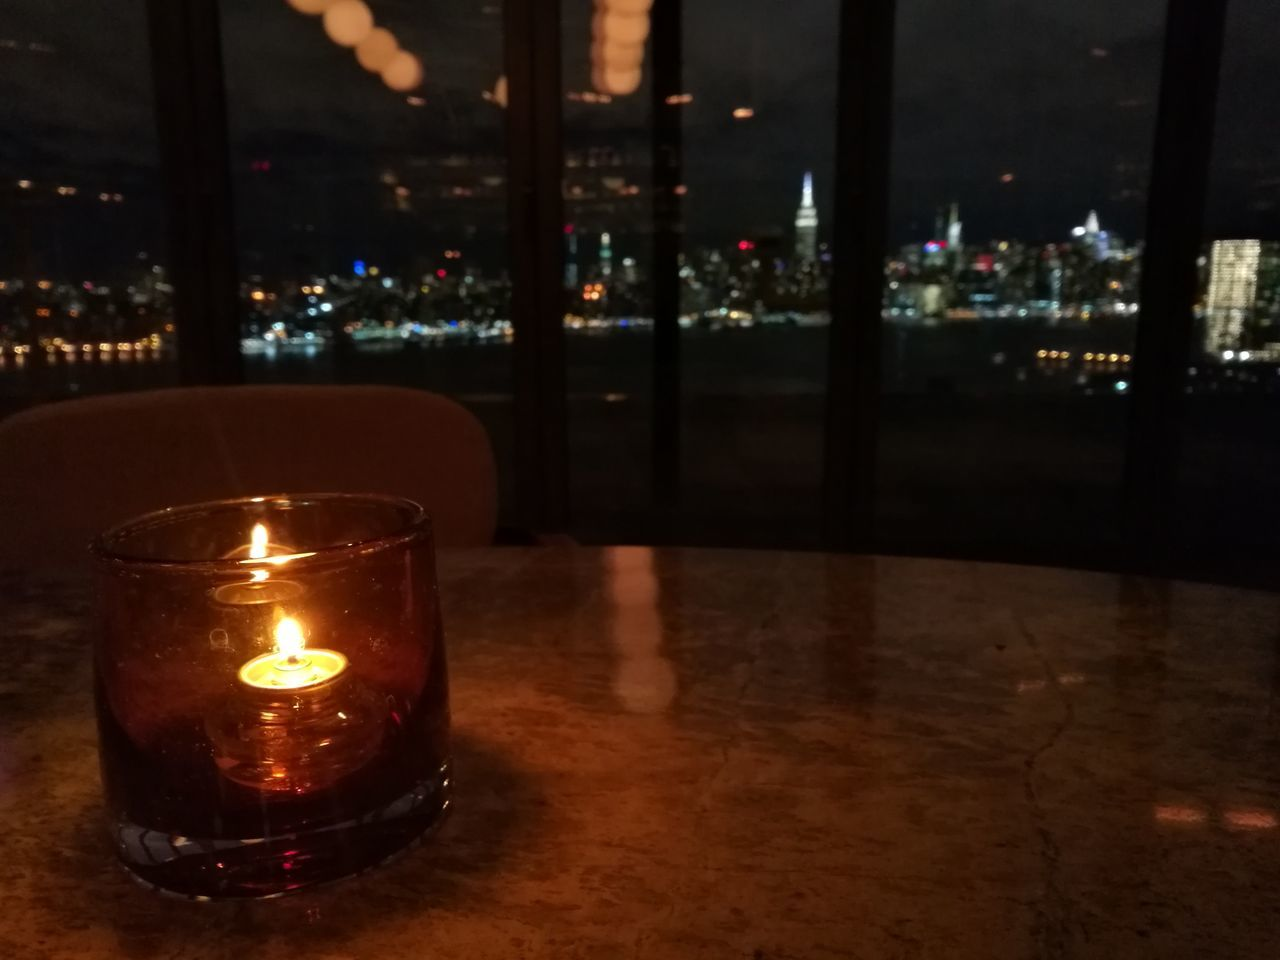 flame, illuminated, burning, candle, glowing, heat - temperature, night, no people, table, focus on foreground, tea light, indoors, close-up, oil lamp